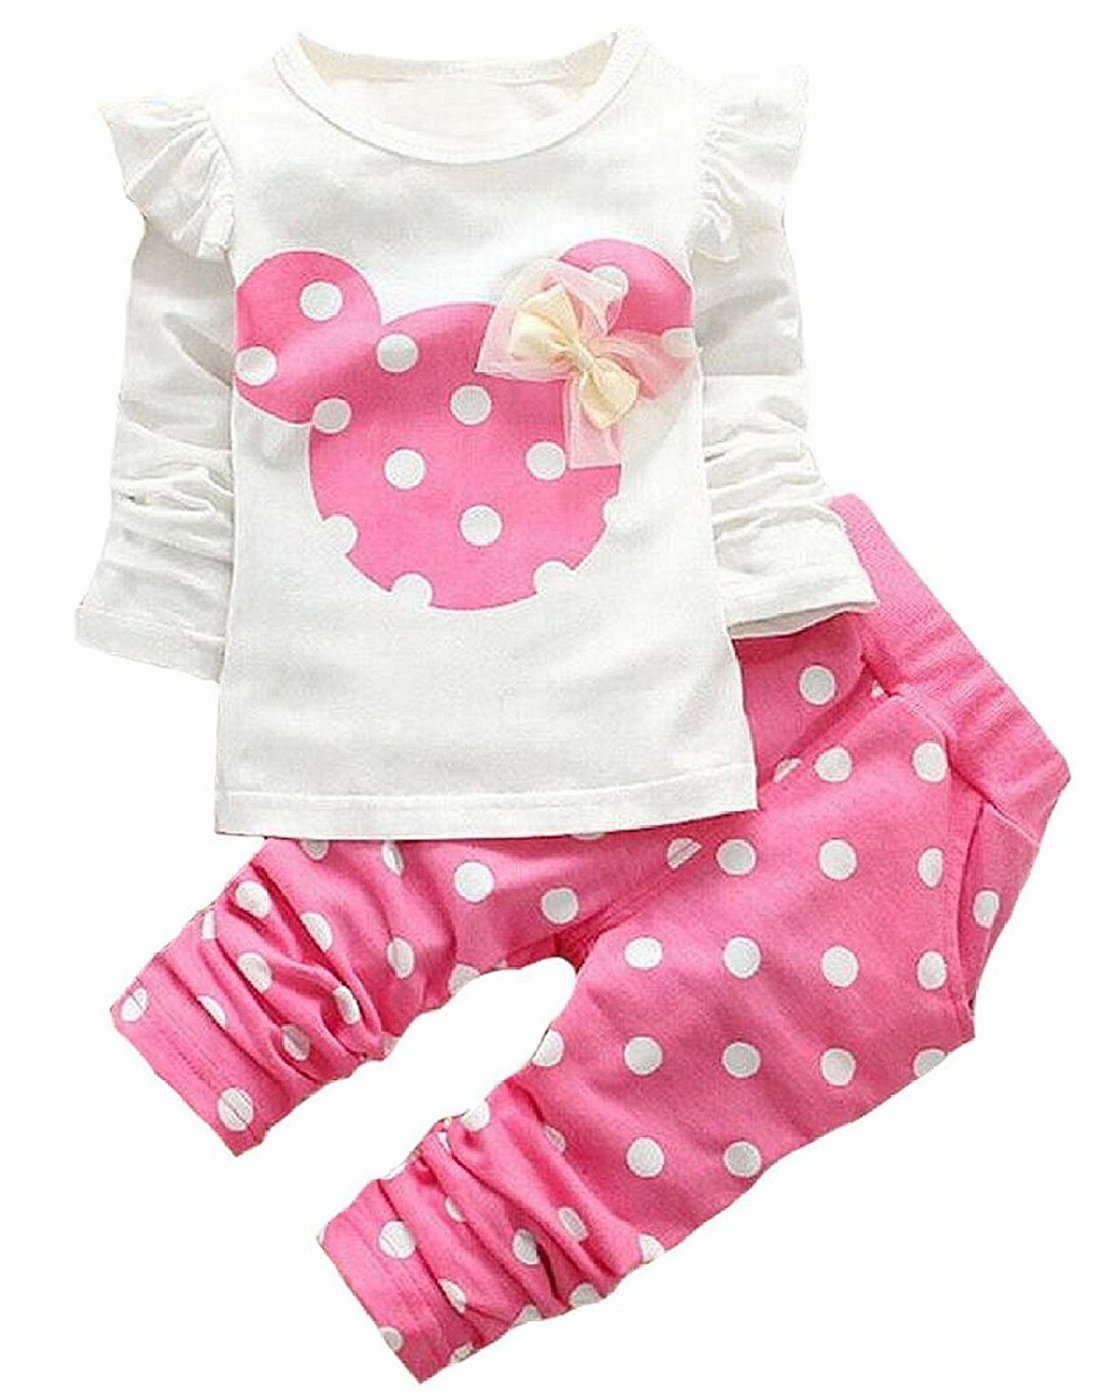 Cute Toddler Baby Girls Clothes Set Long Sleeve T-Shirt and Pants Kids 2pcs Outfits(White+Pink,2T)